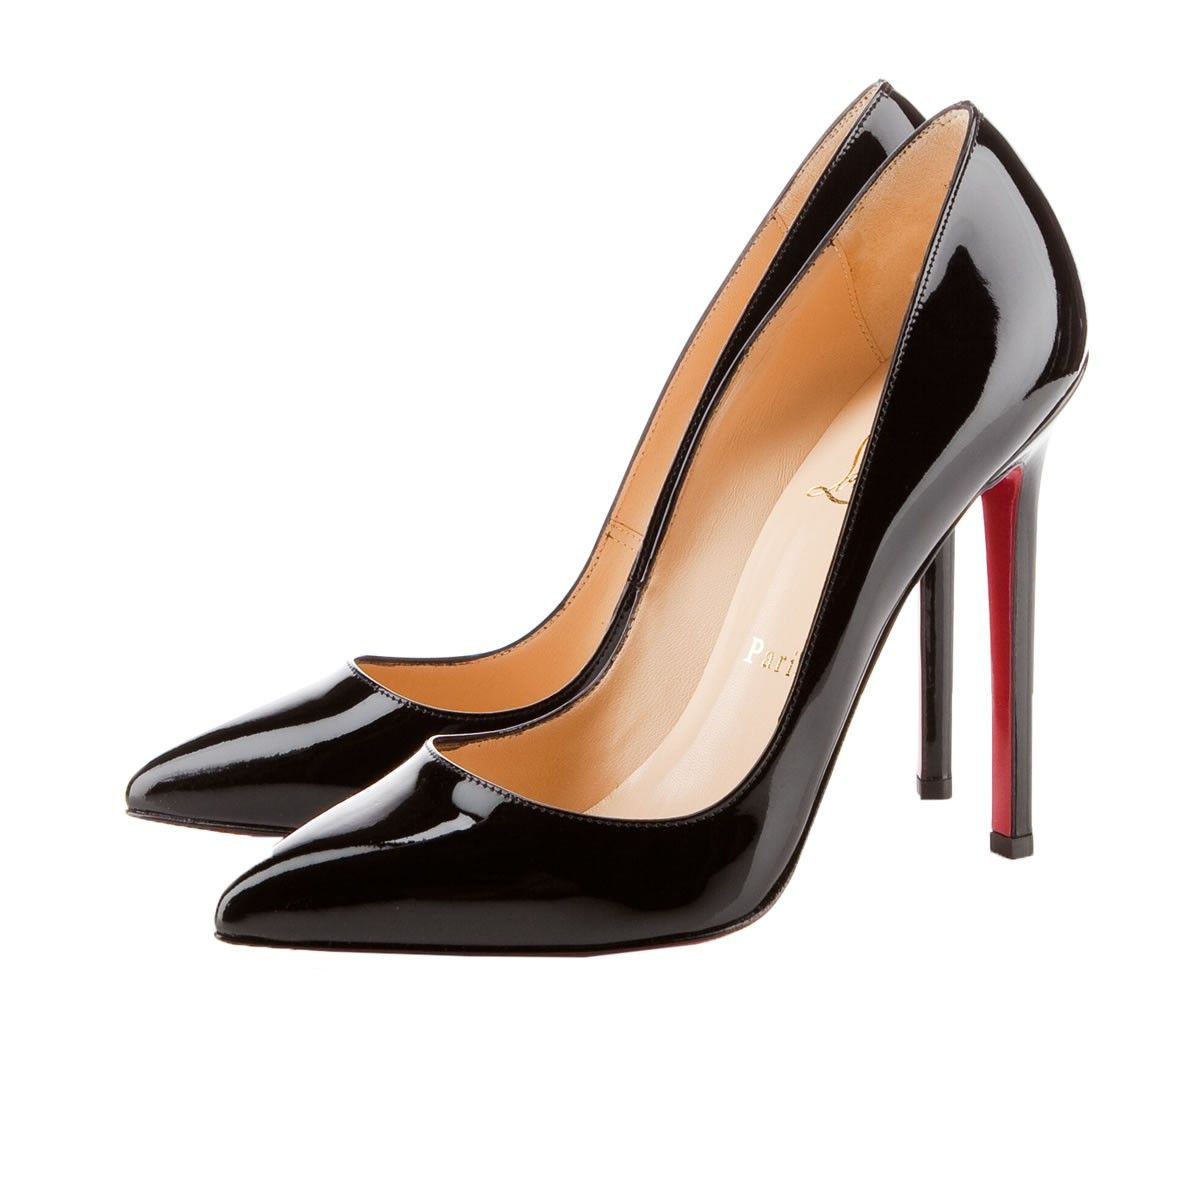 Christian Louboutin Pigalle 120mm Pumps Black | Clothes | Pinterest ...